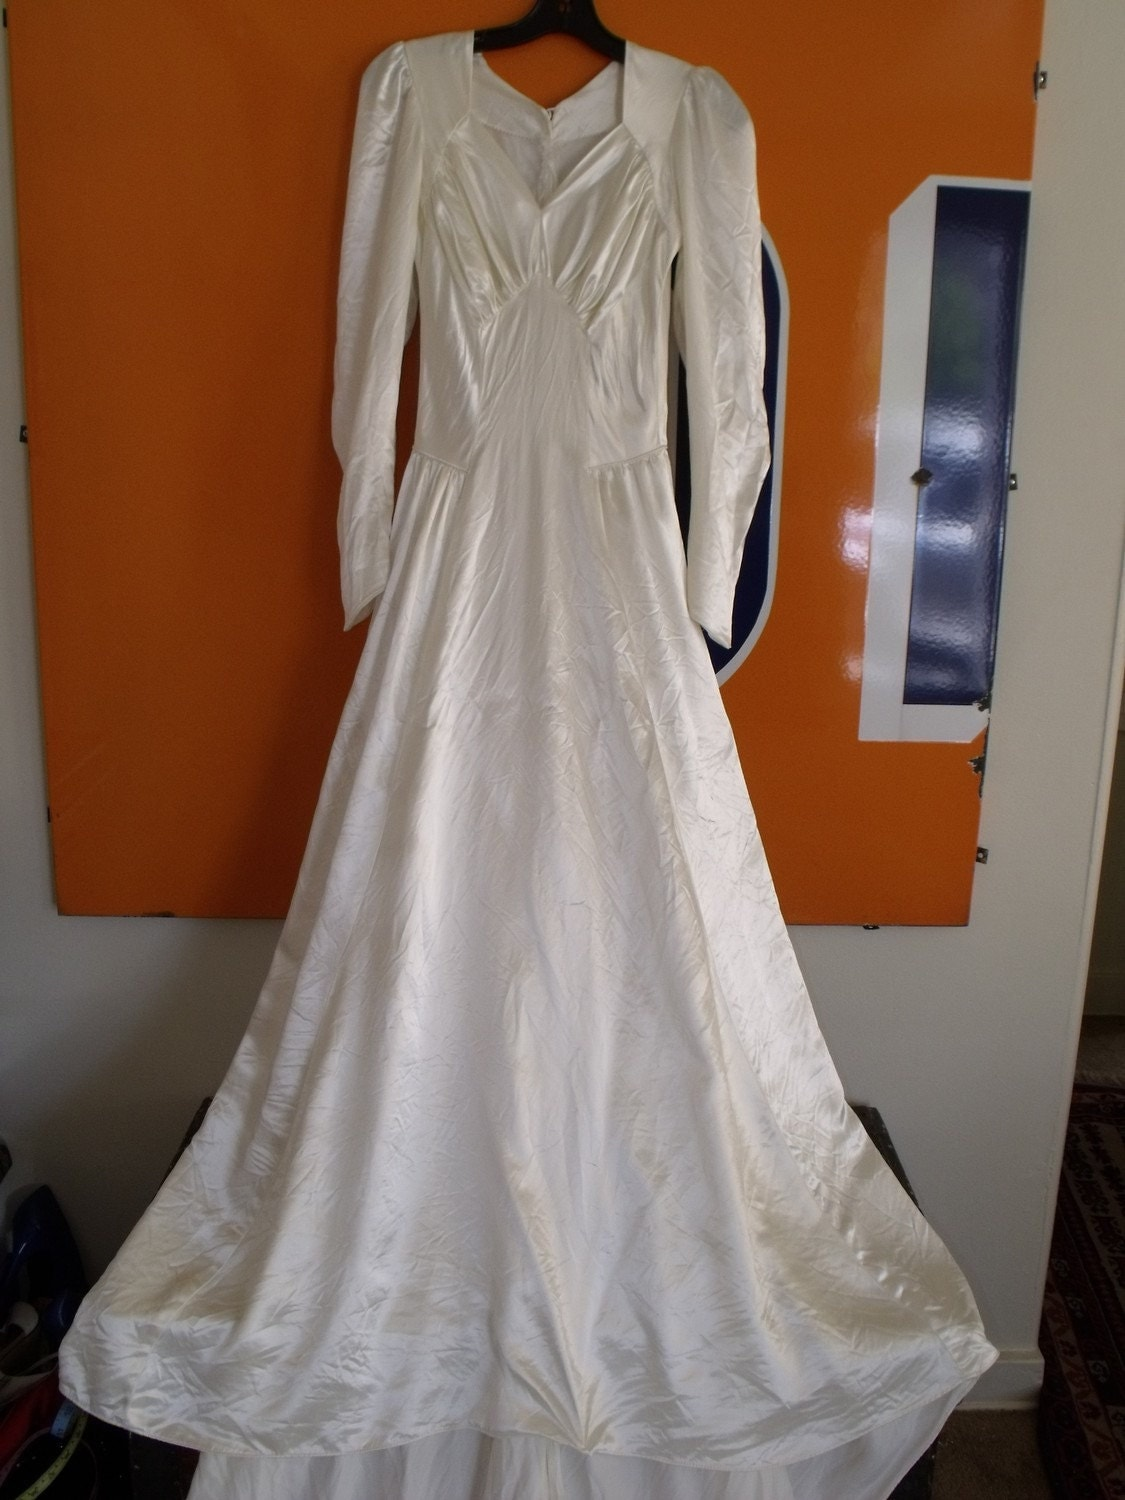 1940 wedding dress for sale images frompo 1 for Old wedding dresses for sale